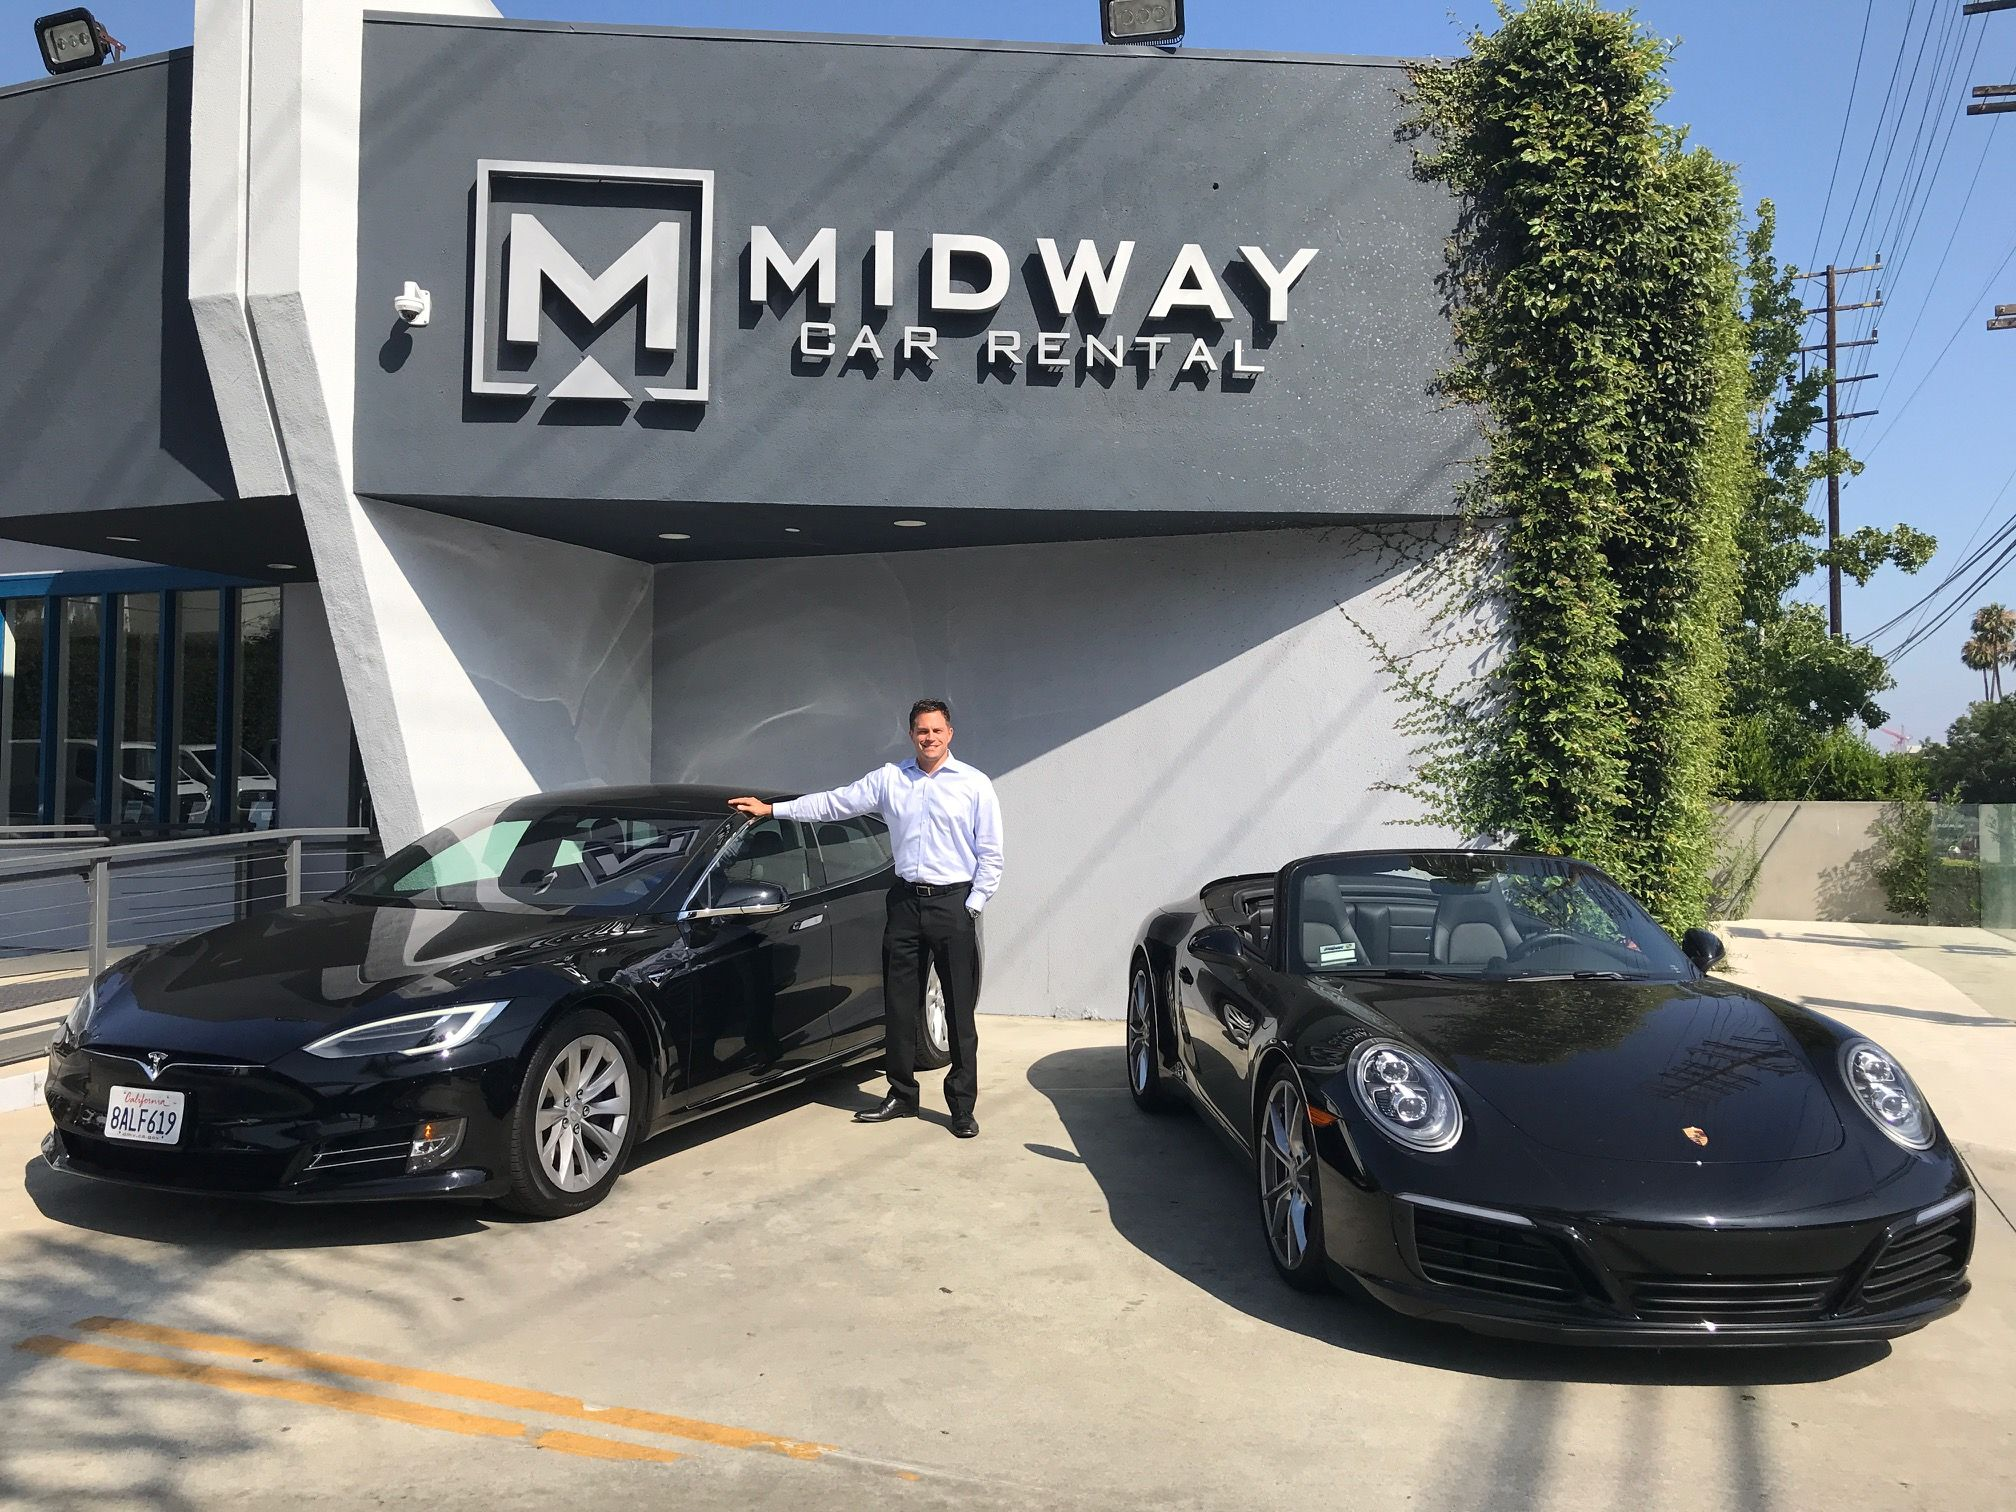 Midway Managing Director Of Sales And Marketing Ryan Kerzner Stands With Two Of The Companies Luxury Rent Car Rental Company Sales And Marketing Luxury Rentals